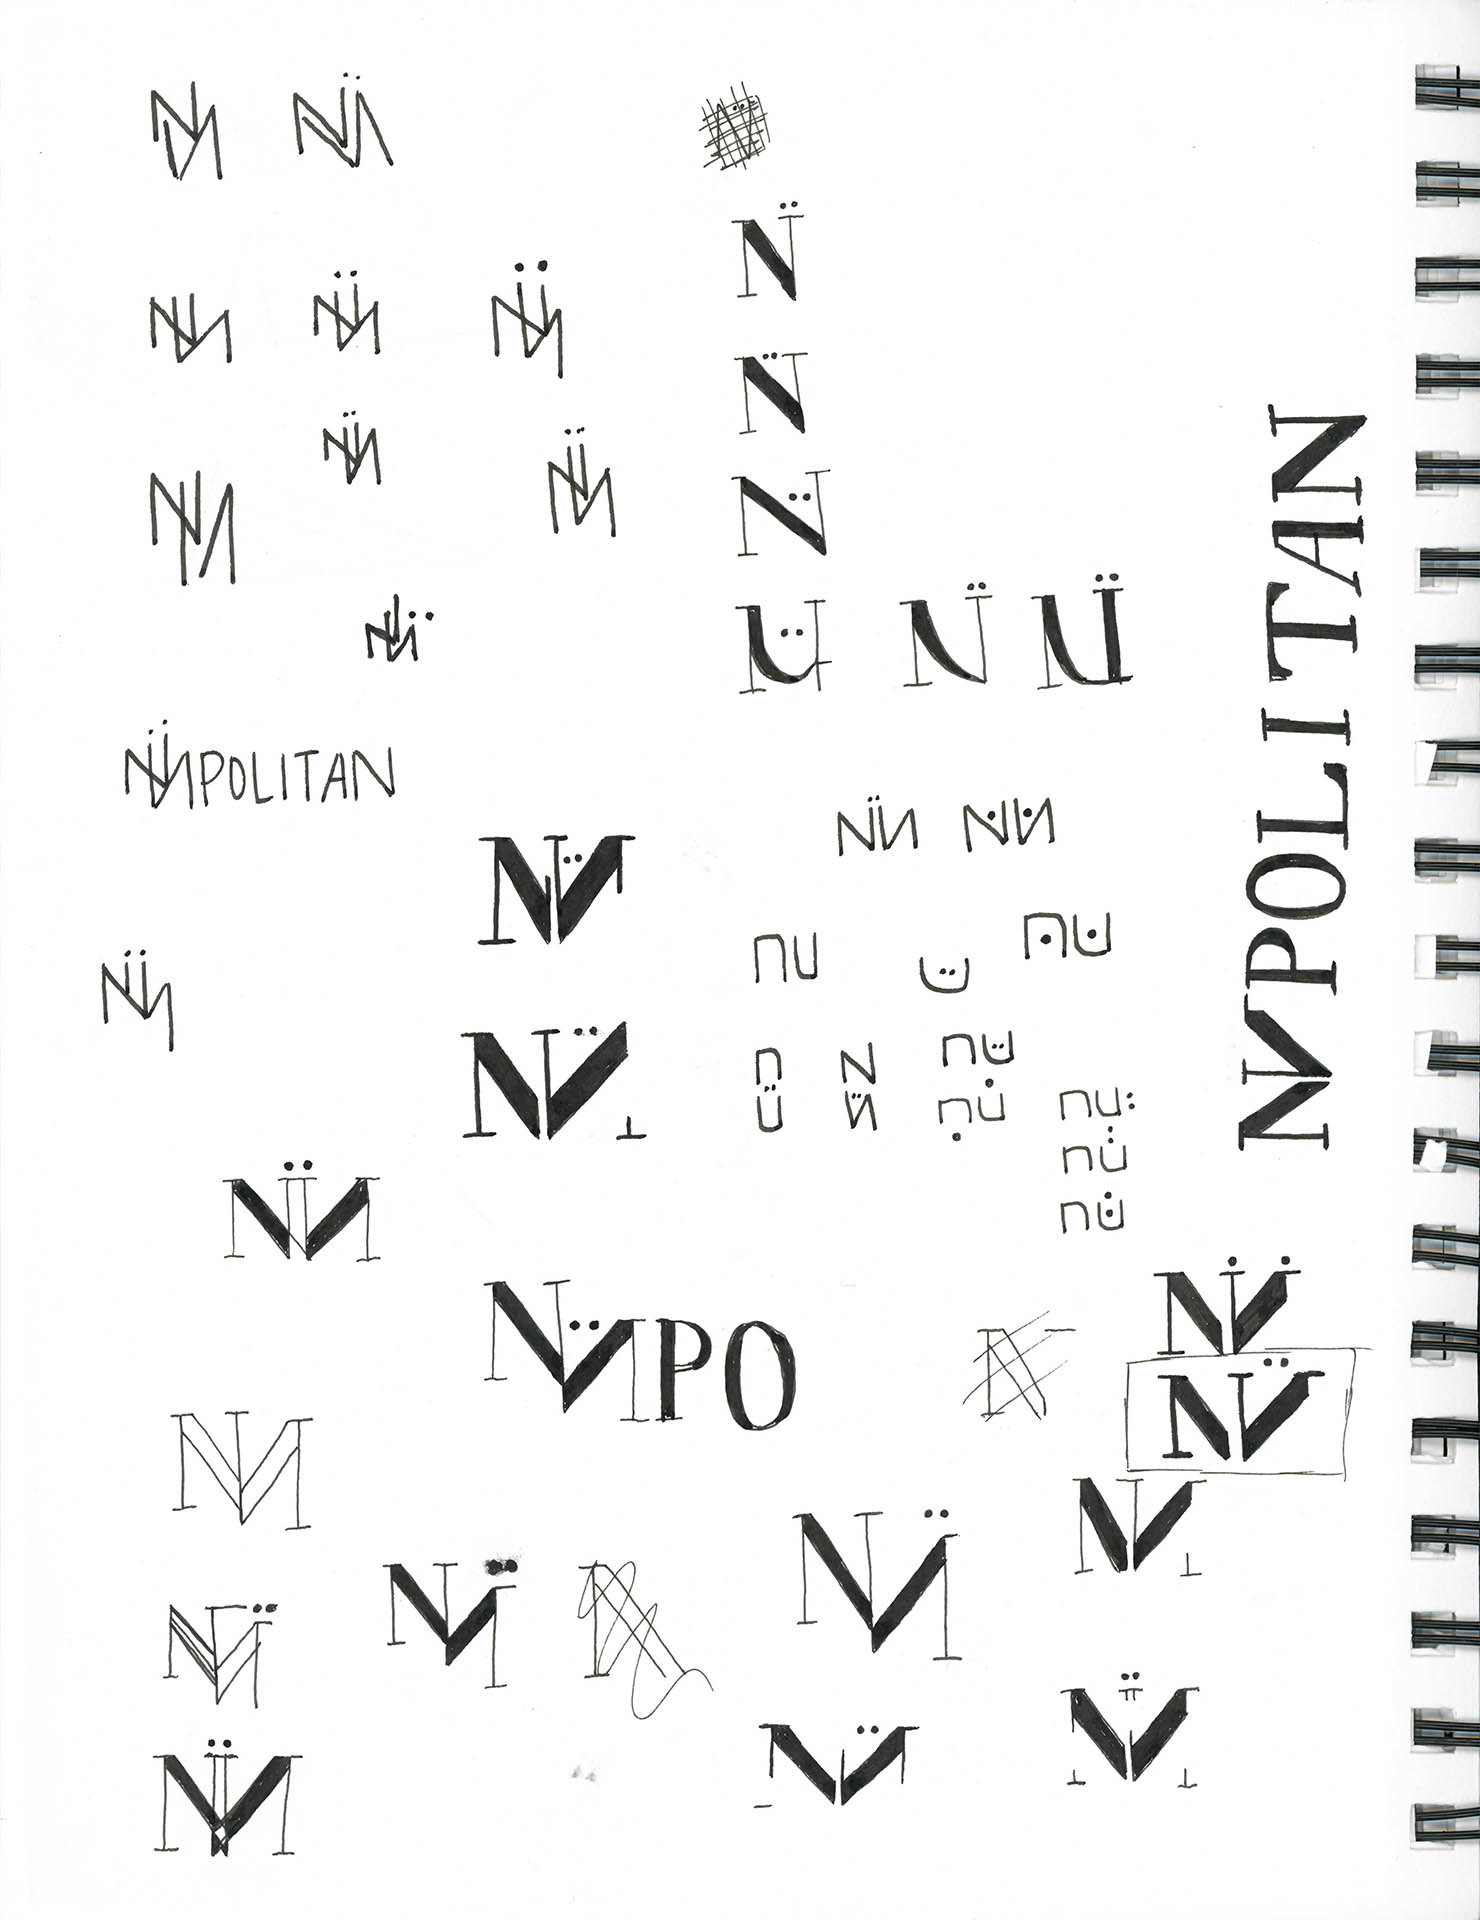 Scan of sketchbook page with iterations for Nüpolitan logo